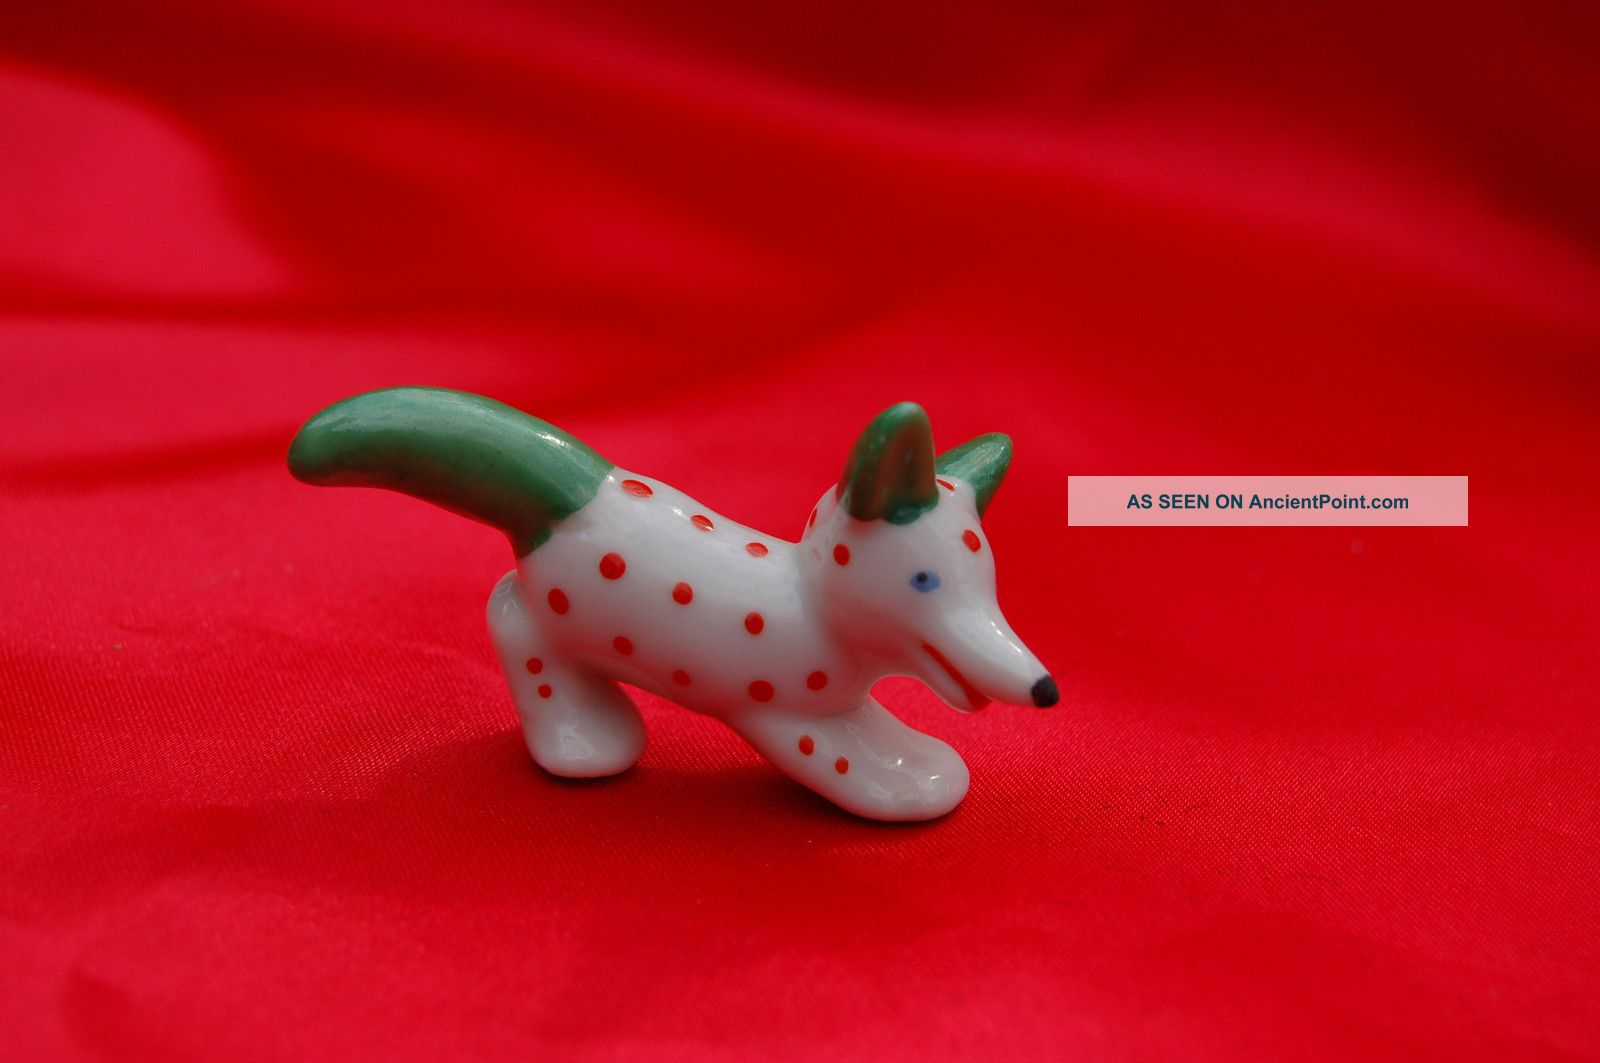 Antique Porcelain Dog Germany Red Dot Whimsical Terrier W Blue Eyes Green Ears Figurines photo